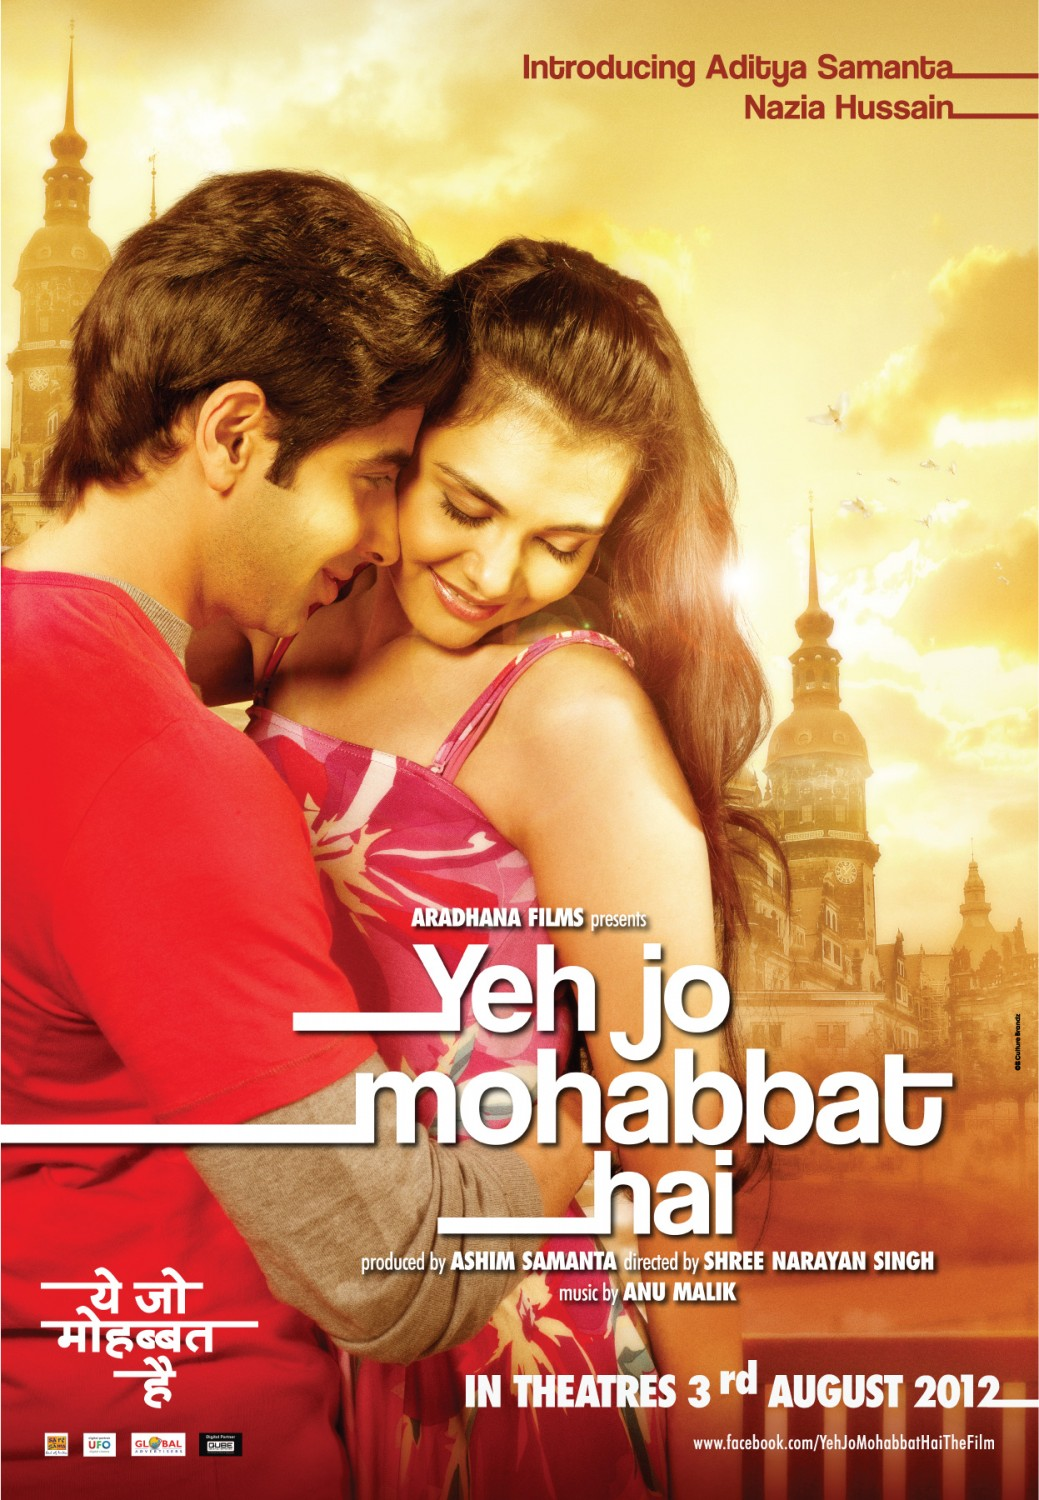 Mohabbat ab nahi hogi ost mp3 song download by momin durrani pakist.